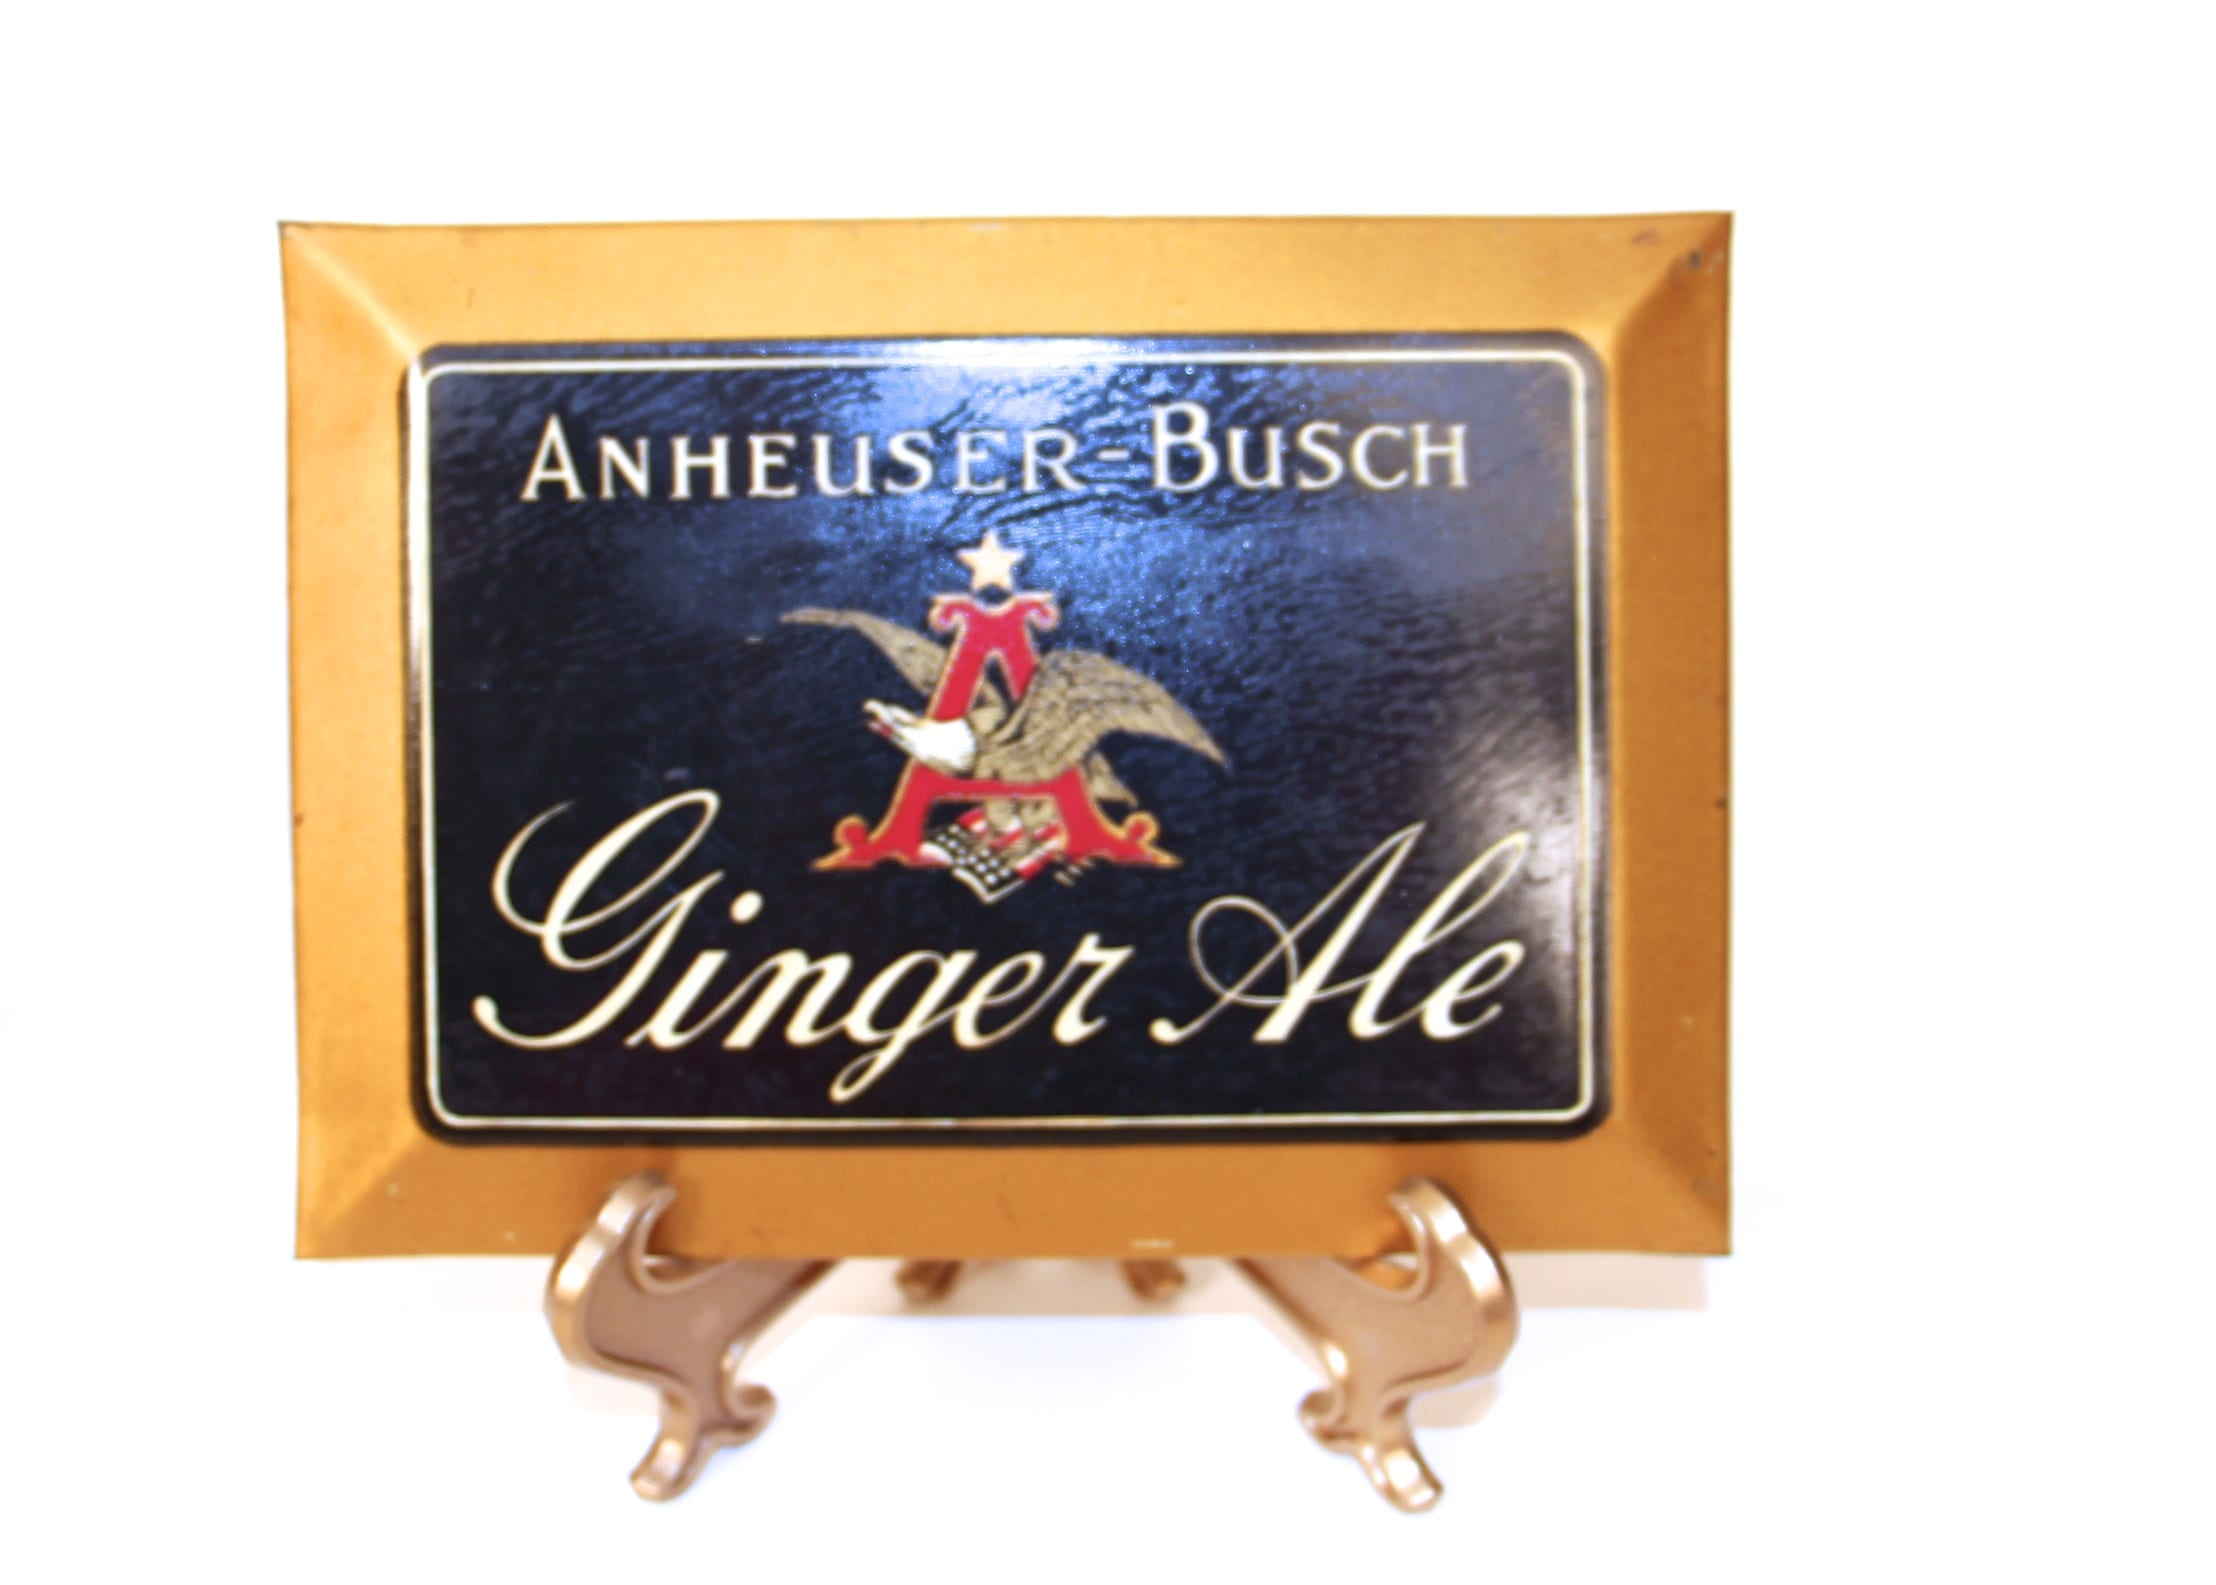 Anheuser Busch Ginger Ale, Tin over Cardboard Sign, St. Louis, MO